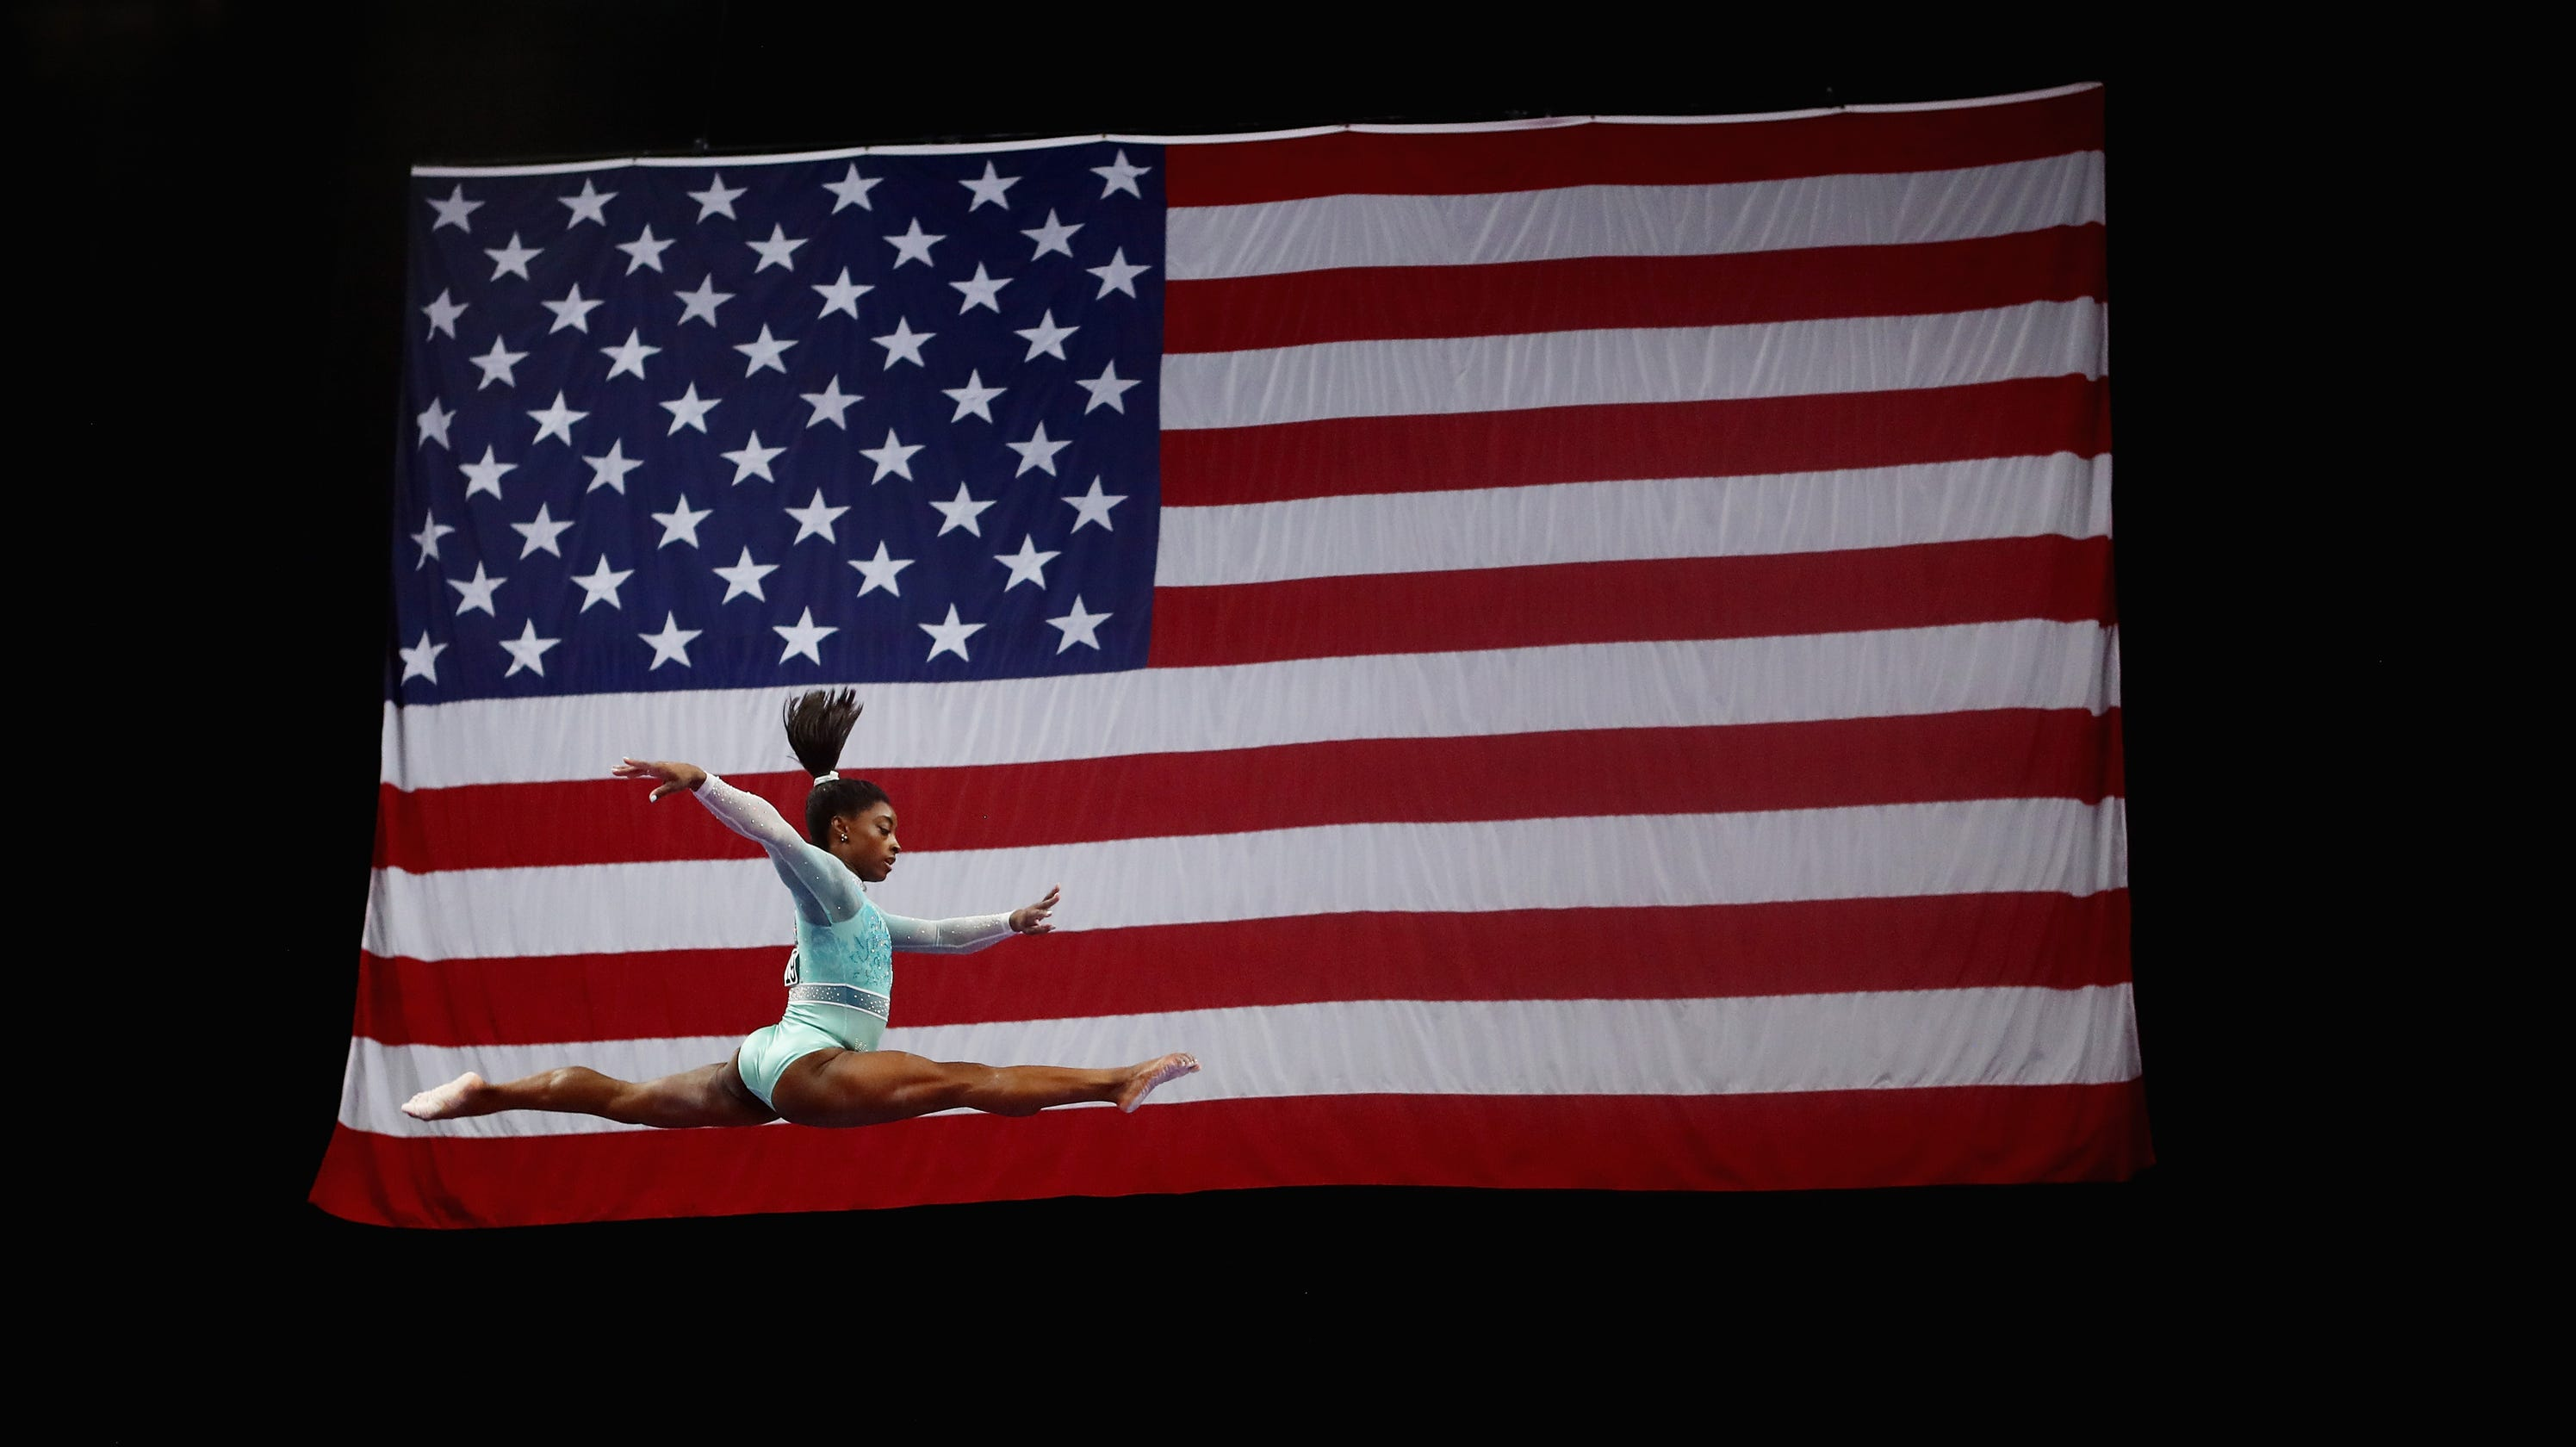 US gymnasts 'deserve better,' USOC CEO Sarah Hirshland says. And she's right